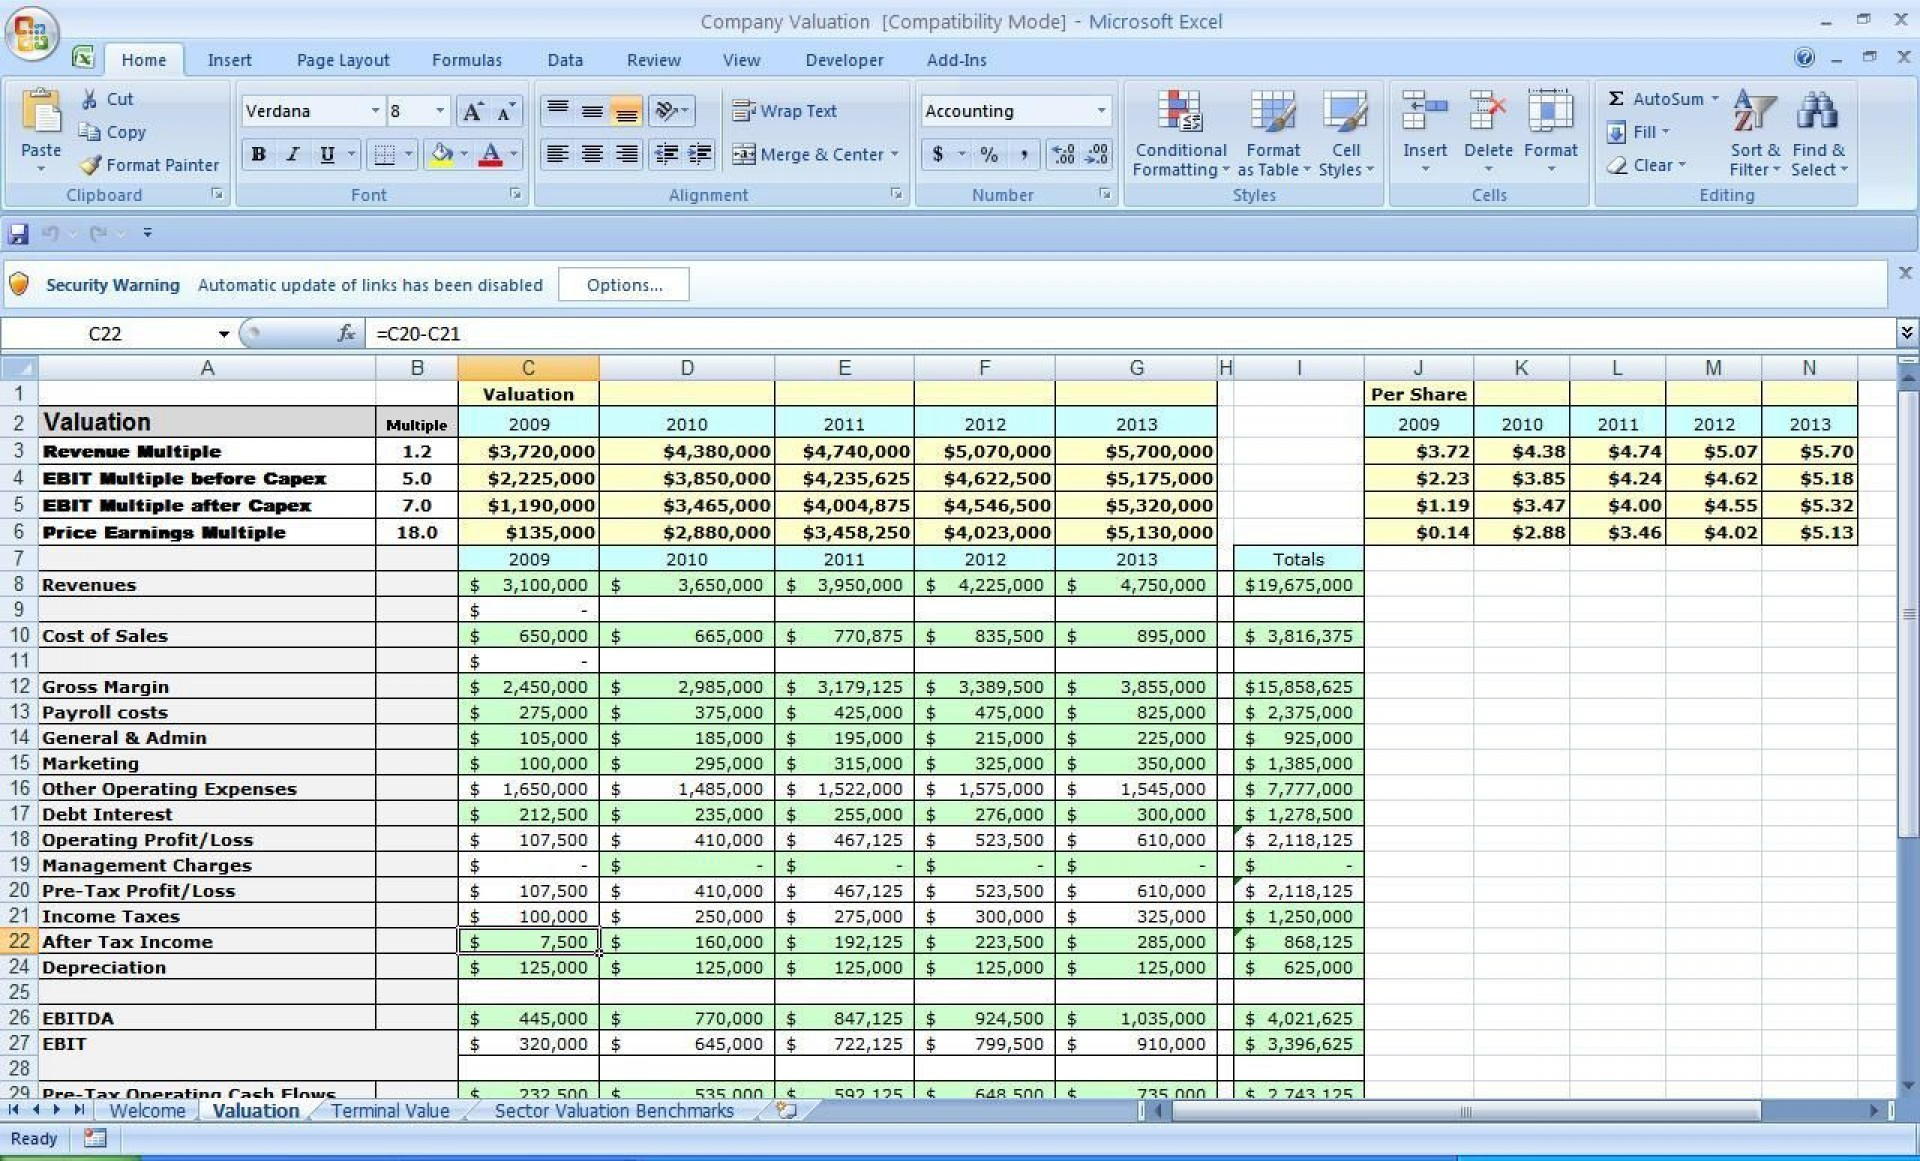 004 Awesome Financial Plan Template Excel Design  Strategic Busines Simple1920